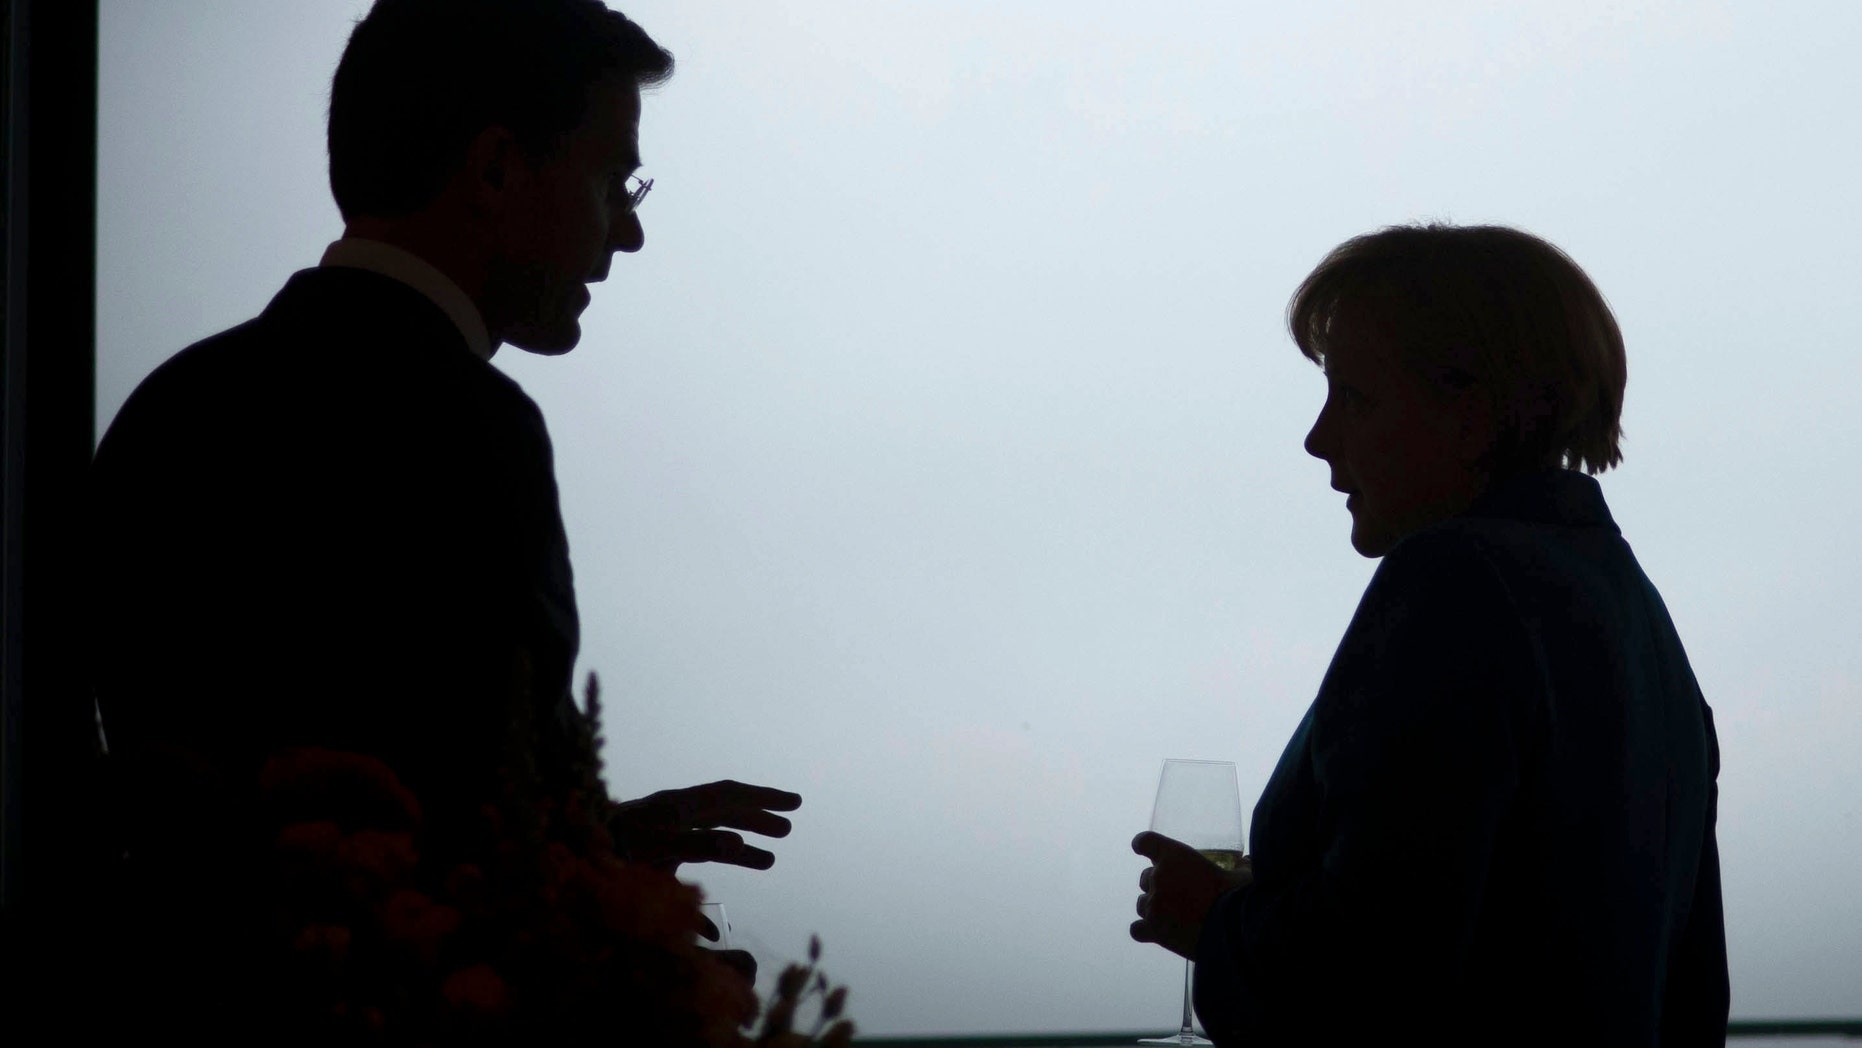 """BERLIN, GERMANY - JUNE 20:  In this photo provided by the German Government Press Office (BPA), German Chancellor Angela Merkel talks with the Dutch Prime Minister Mark Rutte (L) ahead of a working dinner at the Chancellery on June 20, 2012 in Berlin, Germany. Merkel told a joint press conference held with Rutte that while bailout schemes proposed to aid the Eurozone crisis include options to purchase state debt through the secondary bond market, this was not under discussion and was """"purely theoretical"""".  (Photo by Guido Bergmann - Pool/Bundesregierung-Pool via Getty Images)"""